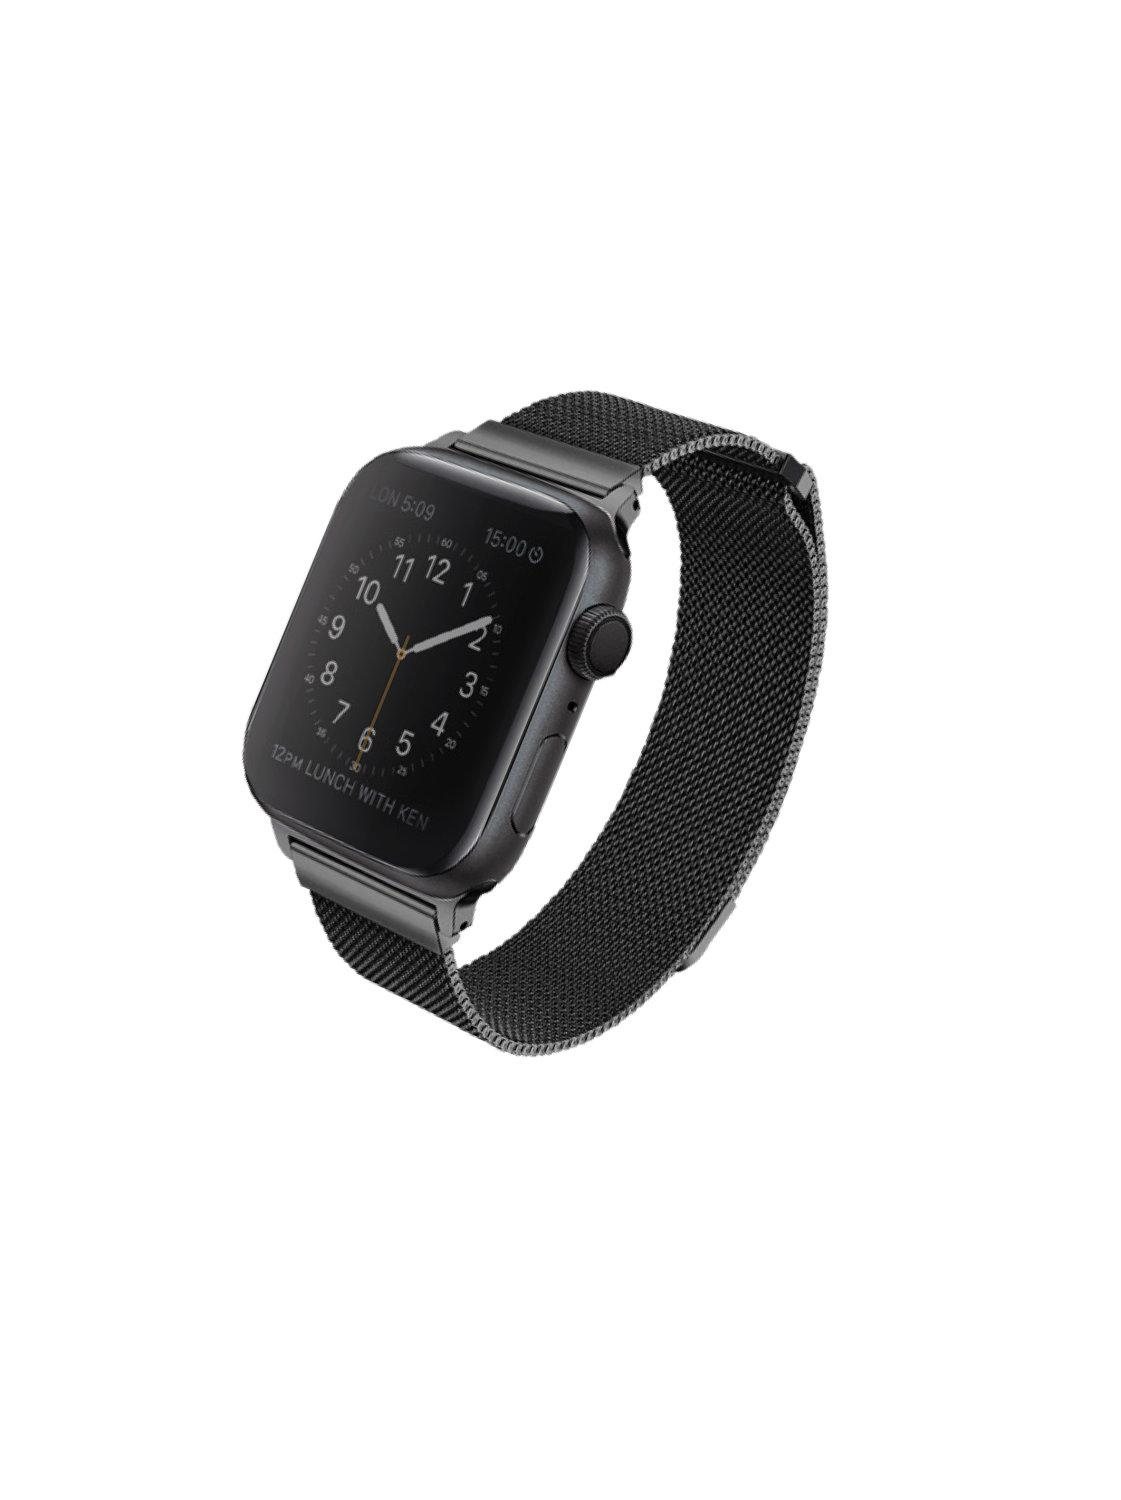 Uniq สาย Apple Watch Stainless steel 44mm รุ่น Dante - Black